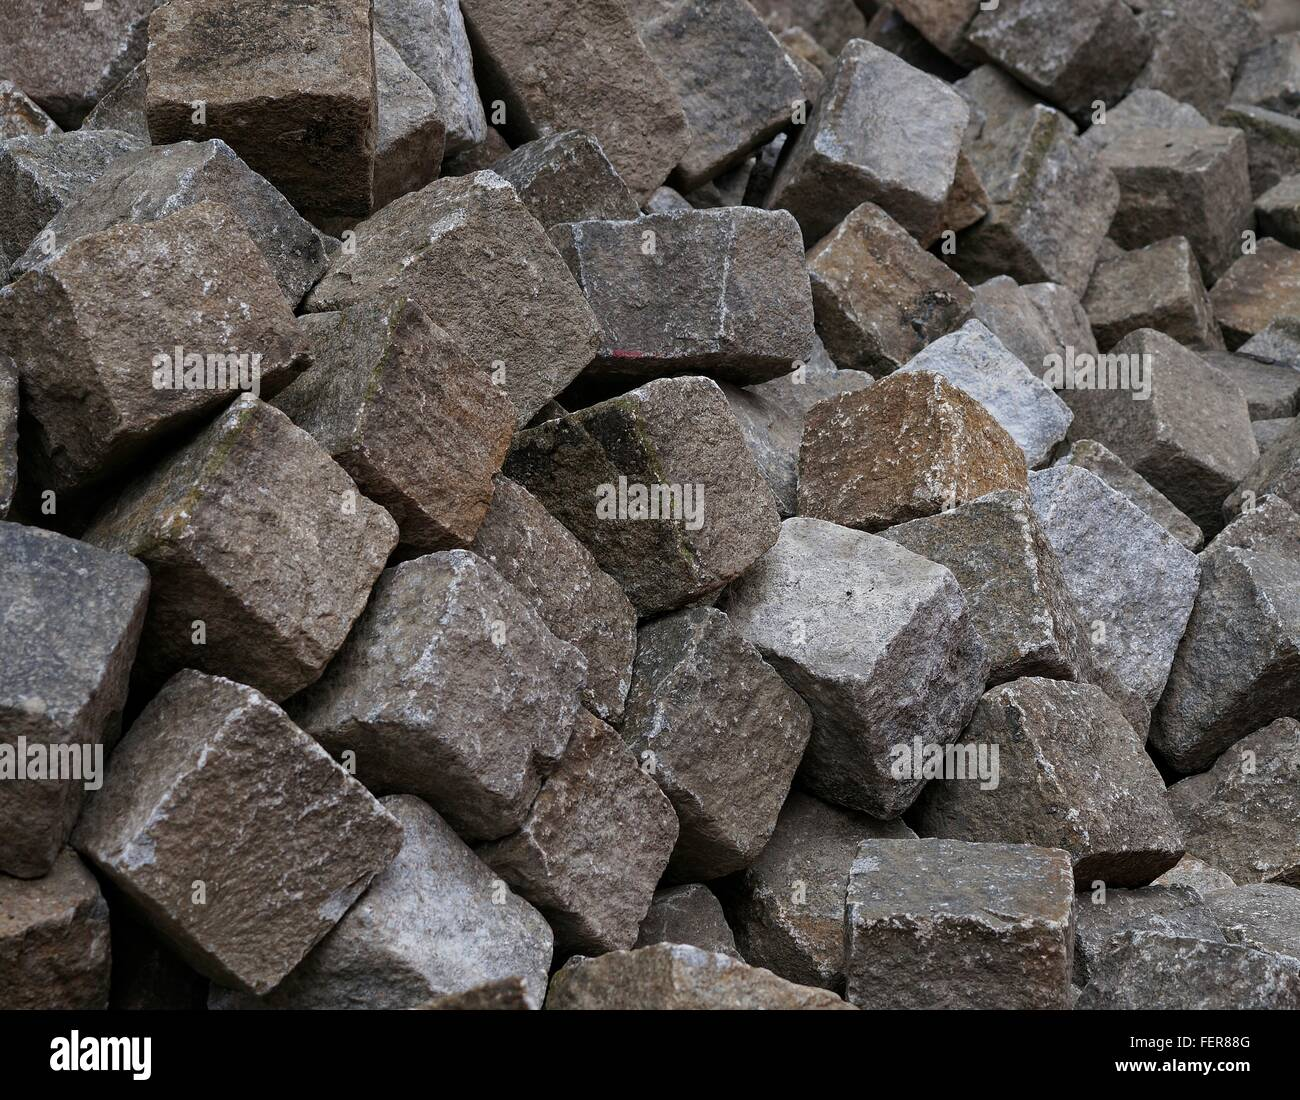 Full Frame Shot Of Cubicle Rocks - Stock Image